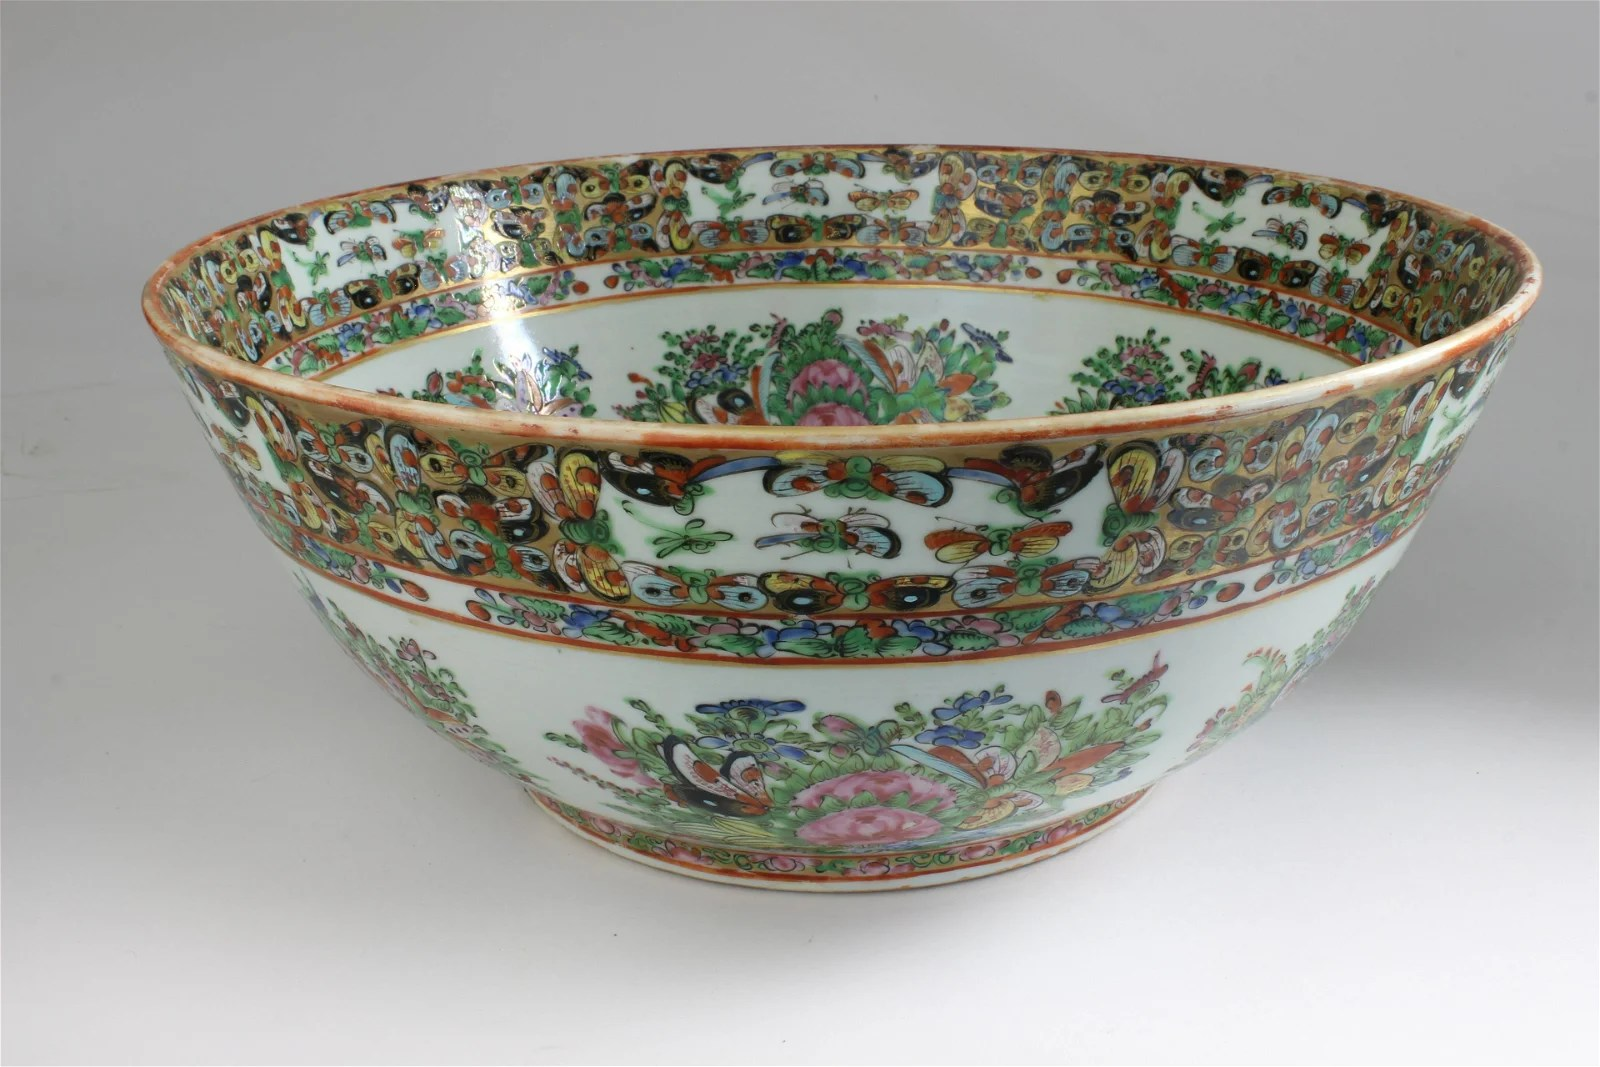 Chinese Export Overglazed Punch Bowl, circa 1870